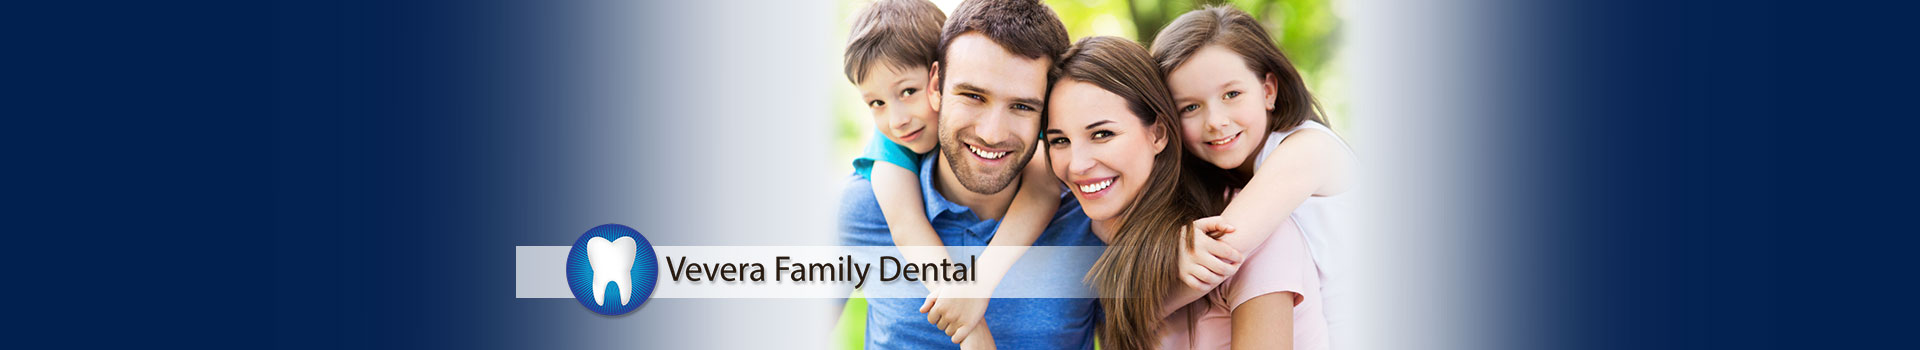 vevera-family-dental